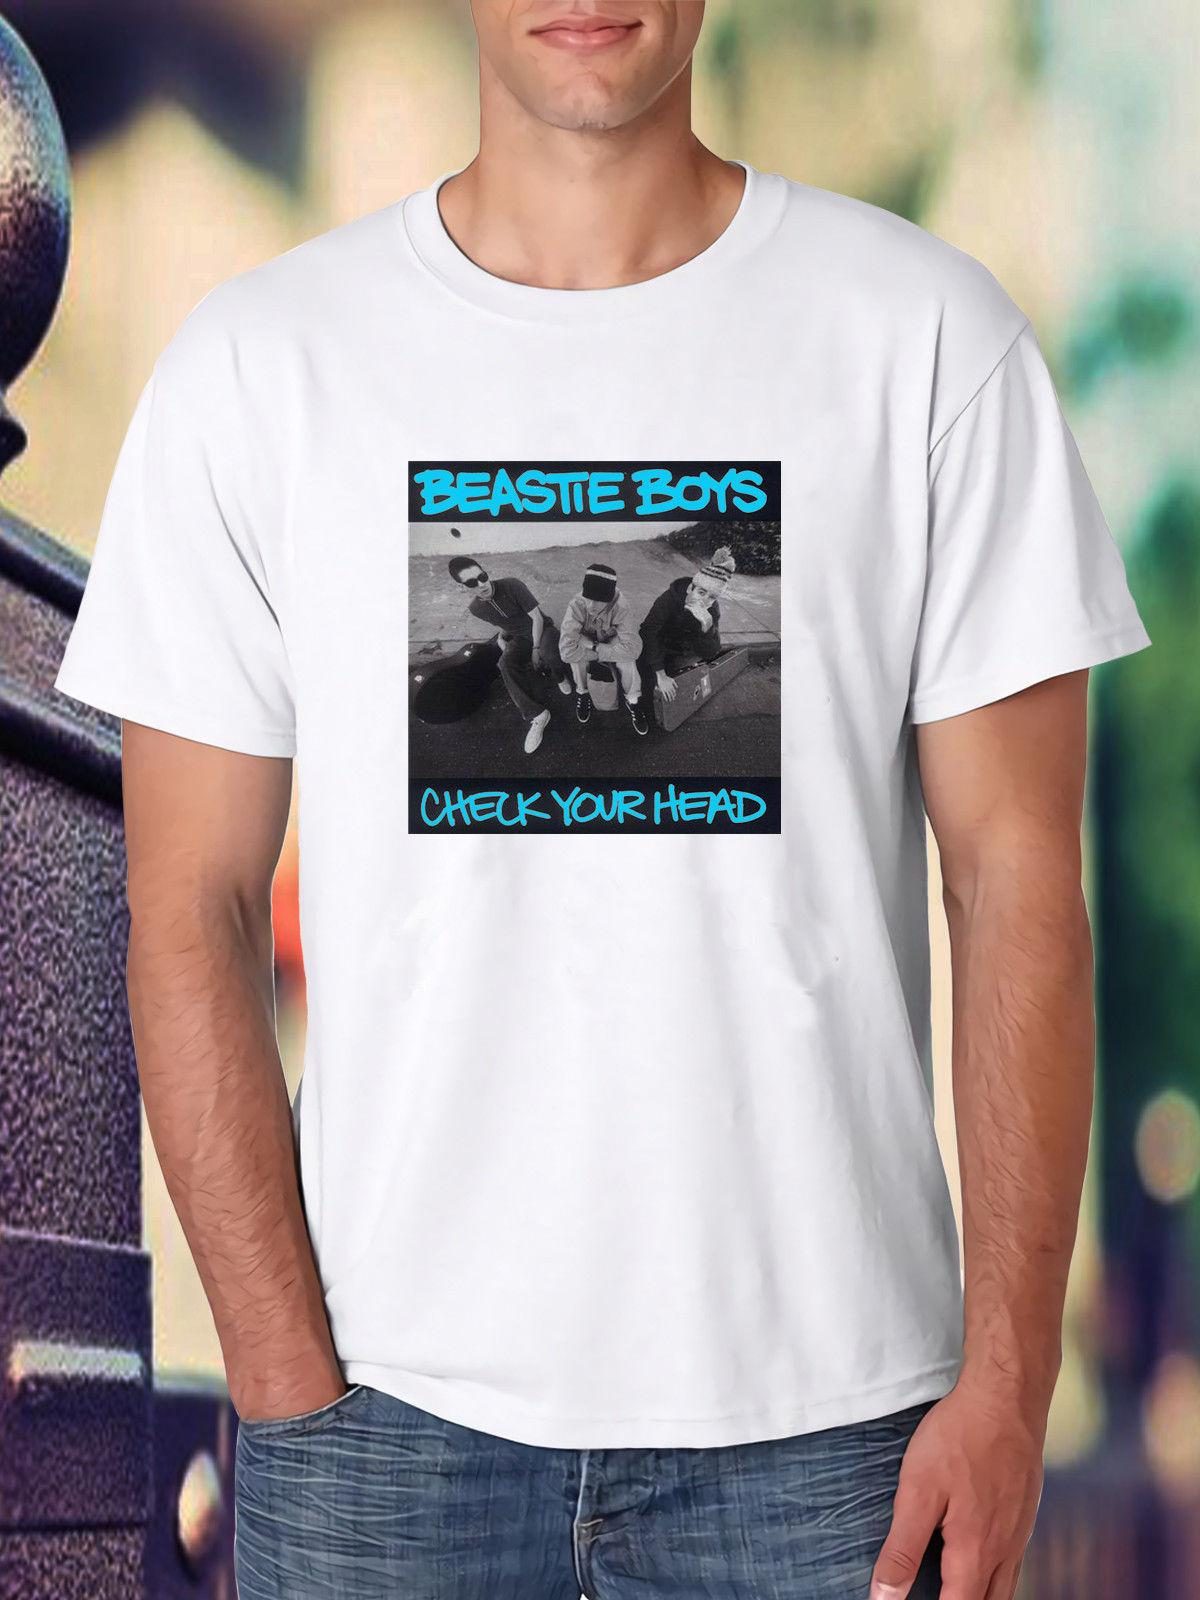 5bfae65b2cbc BEASTIE BOYS LIGHT GREY CHECK YOUR HEAD Poster White Tee Shirt Short Sleeve  Plus Size T Shirt Colour Jersey Print T Shirt Vintage Tees Unique T Shirts  From ...